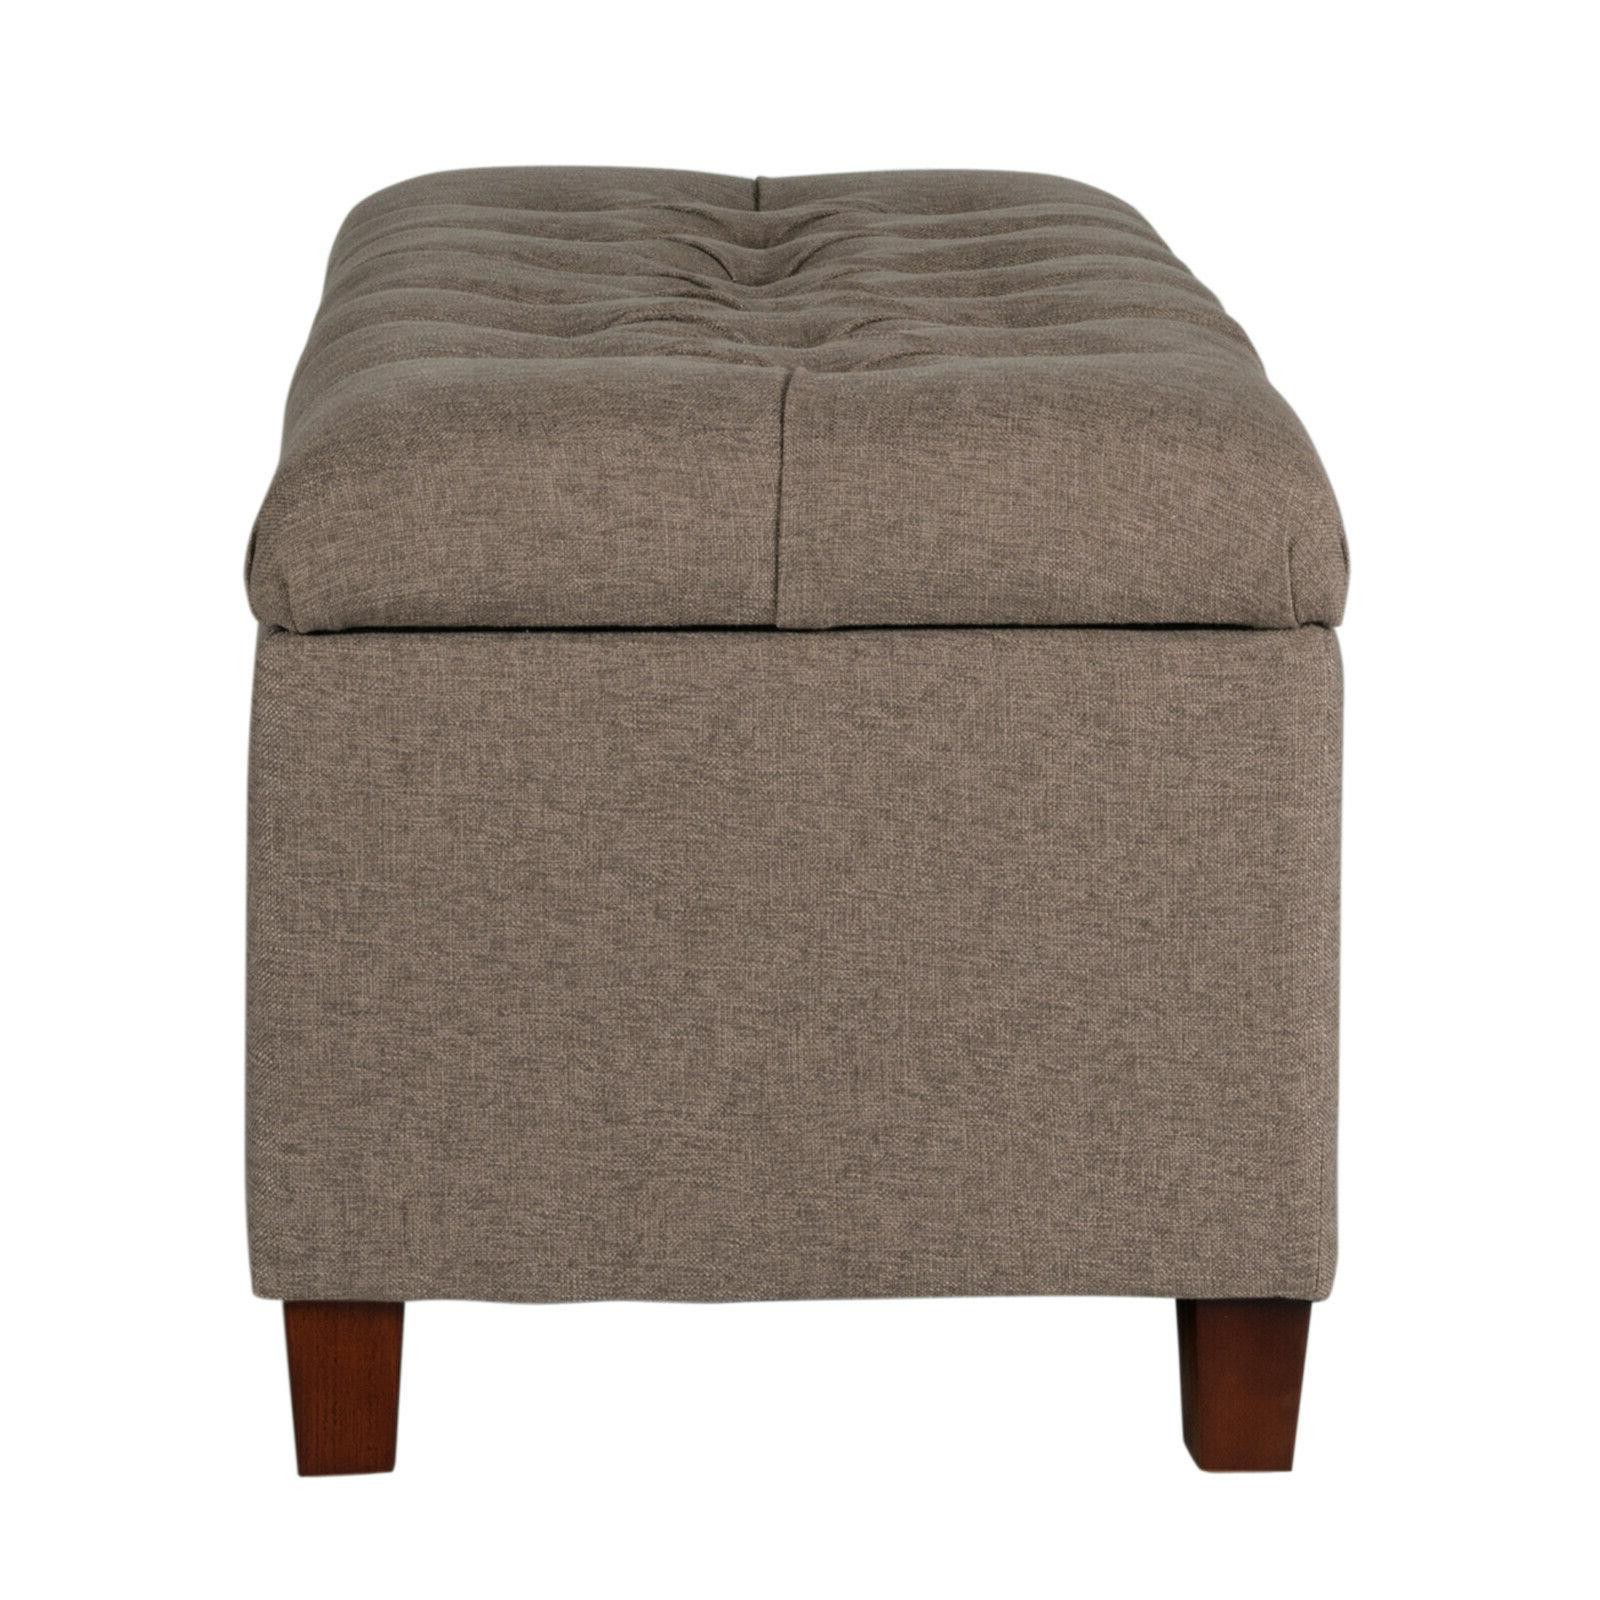 Ainsley Button Bench 18-Inch Seat w/ Textured Fabric